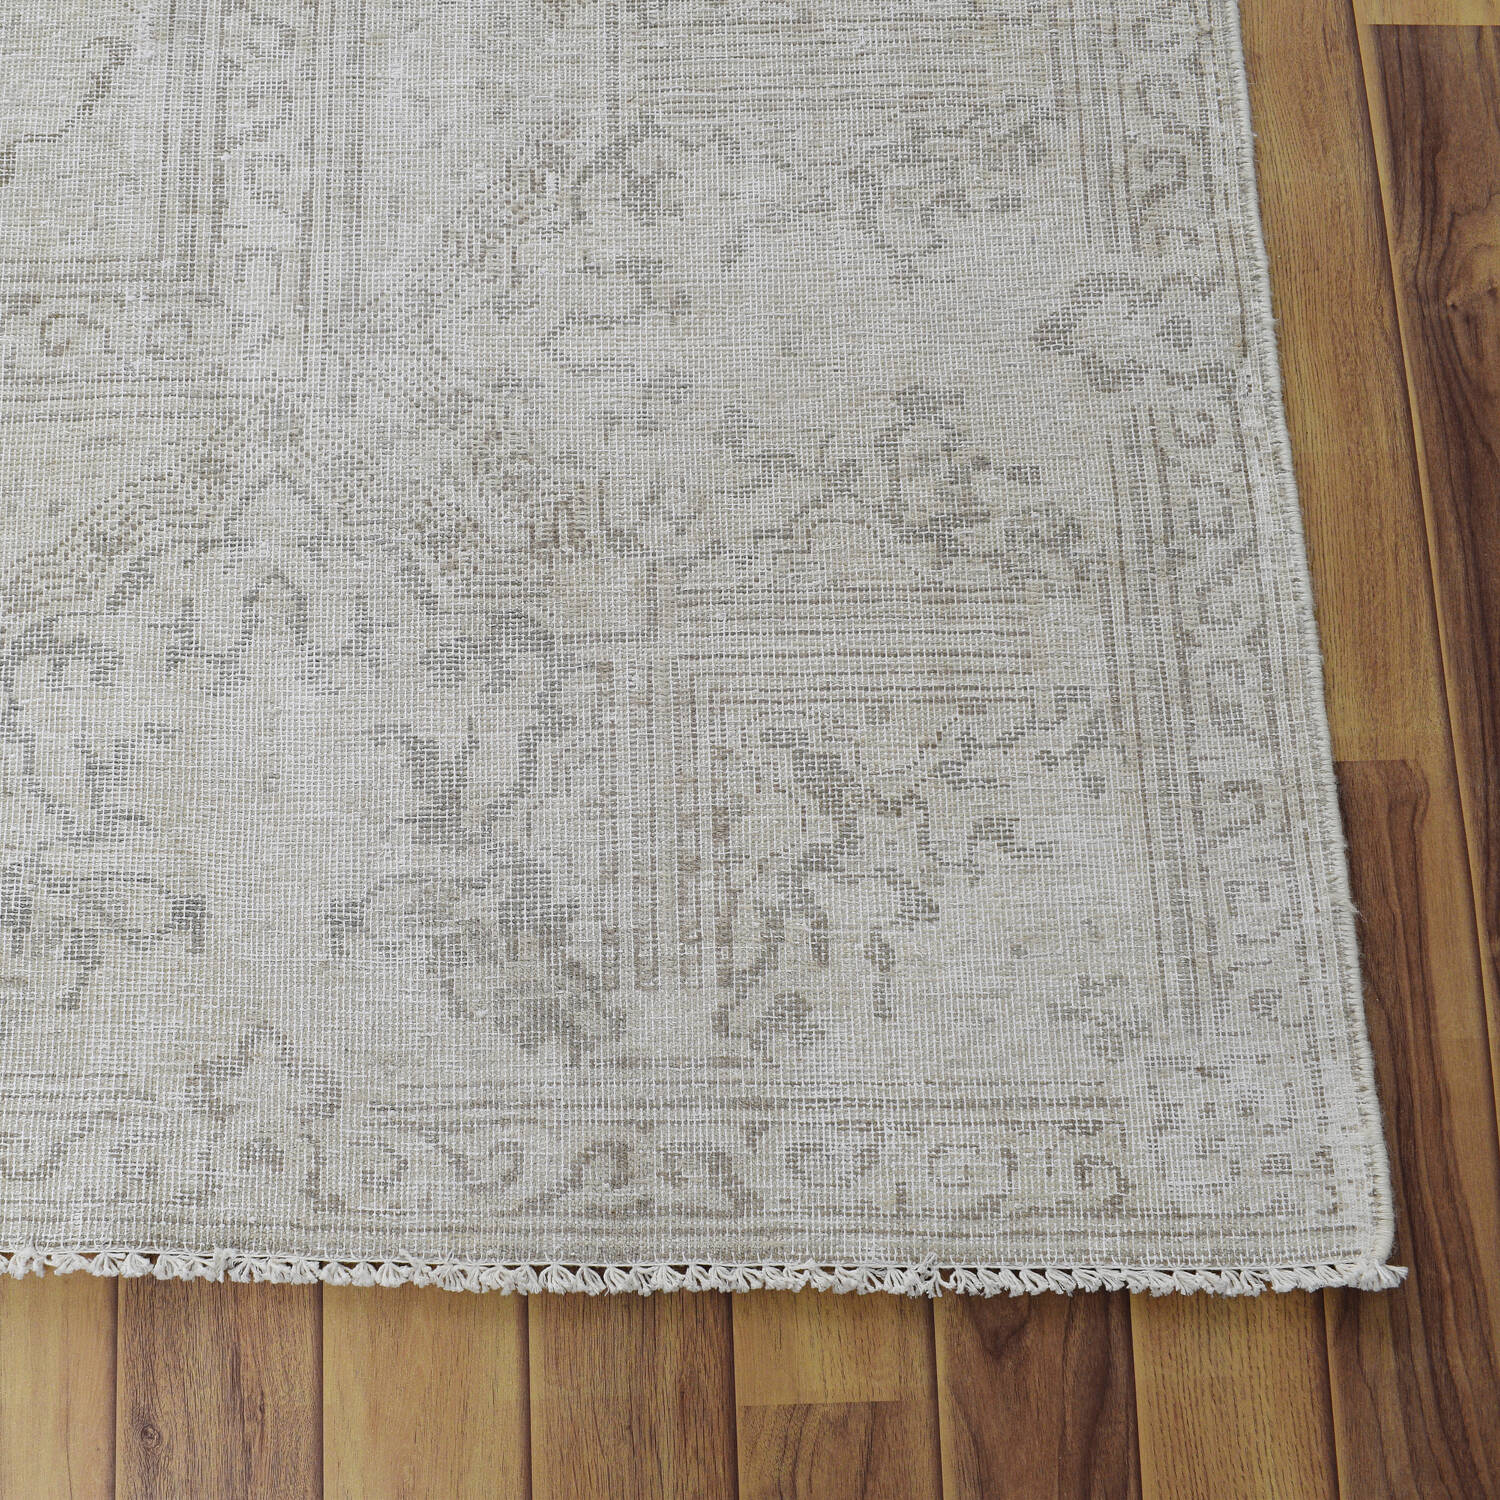 Antique Muted Kerman Distressed Persian Area Rug 9x12 image 5